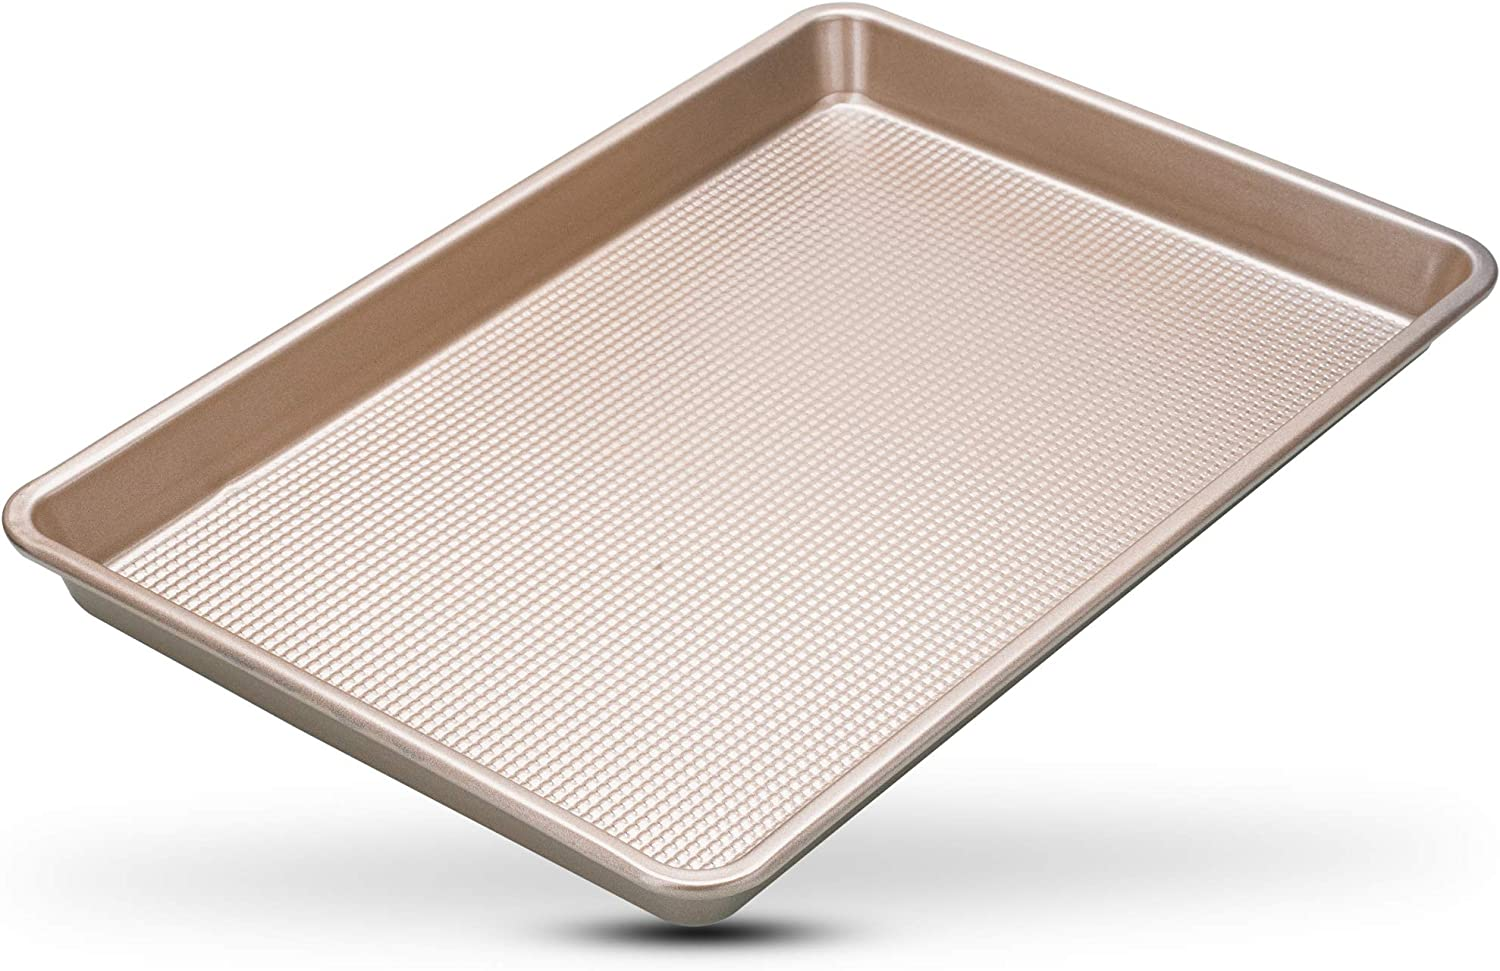 Nonstick Jelly Roll Baking Pan - 10 x 15 Jelly Roll Baking Sheet Pan - Perfect Cookie Sheet For Baking and Roasting - Durable Warp-Resistant, Superior Baking Design - Food-Safe Nonstick Coating